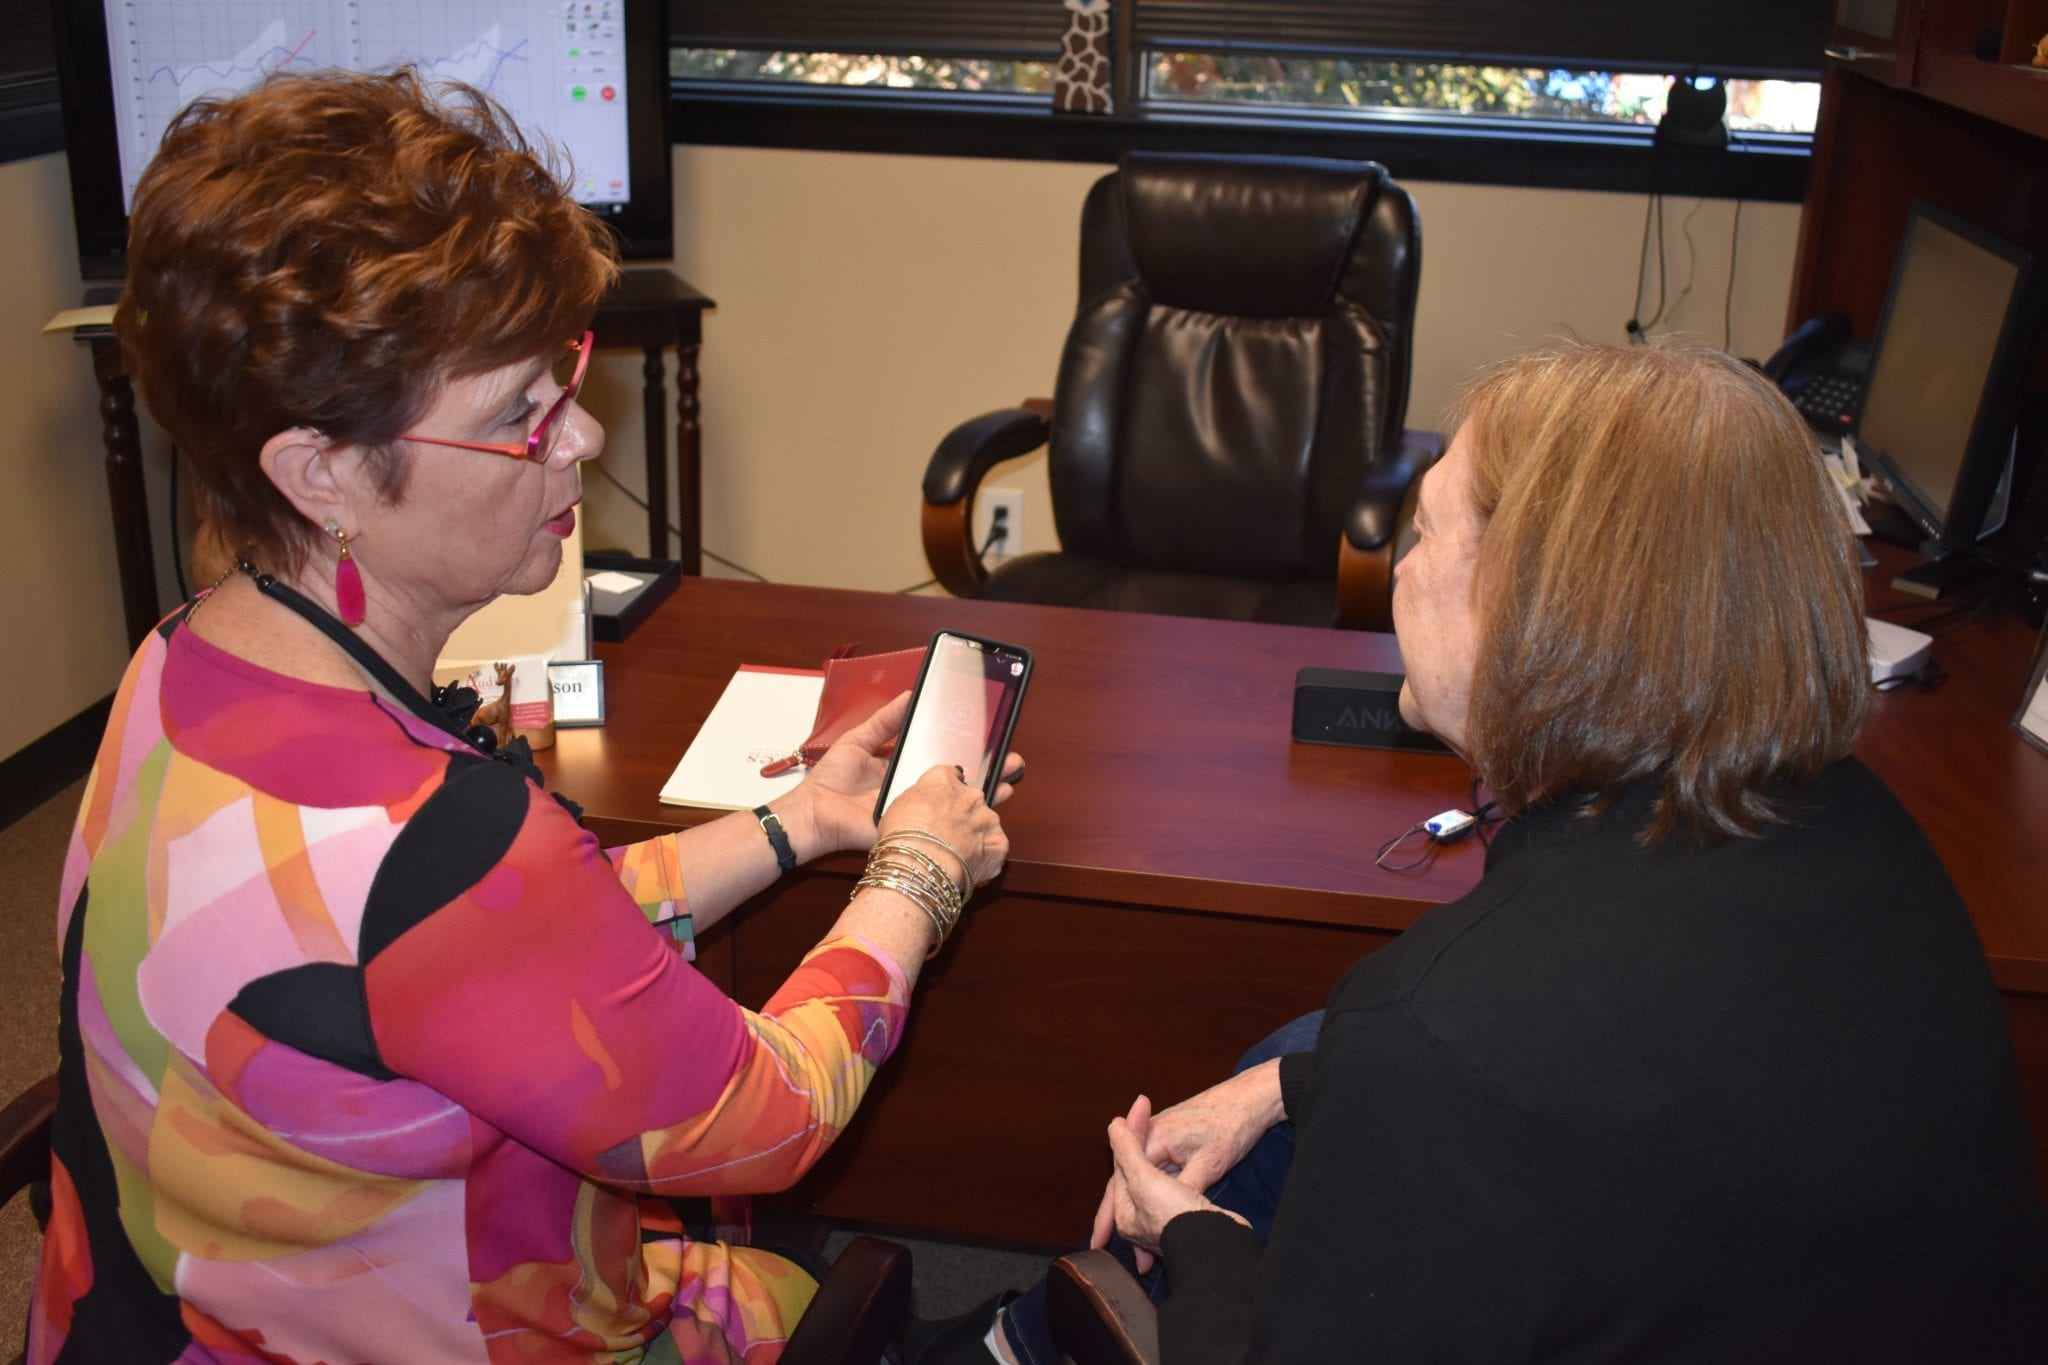 Audiologist showing patient how to use hearing aid app on smartphone